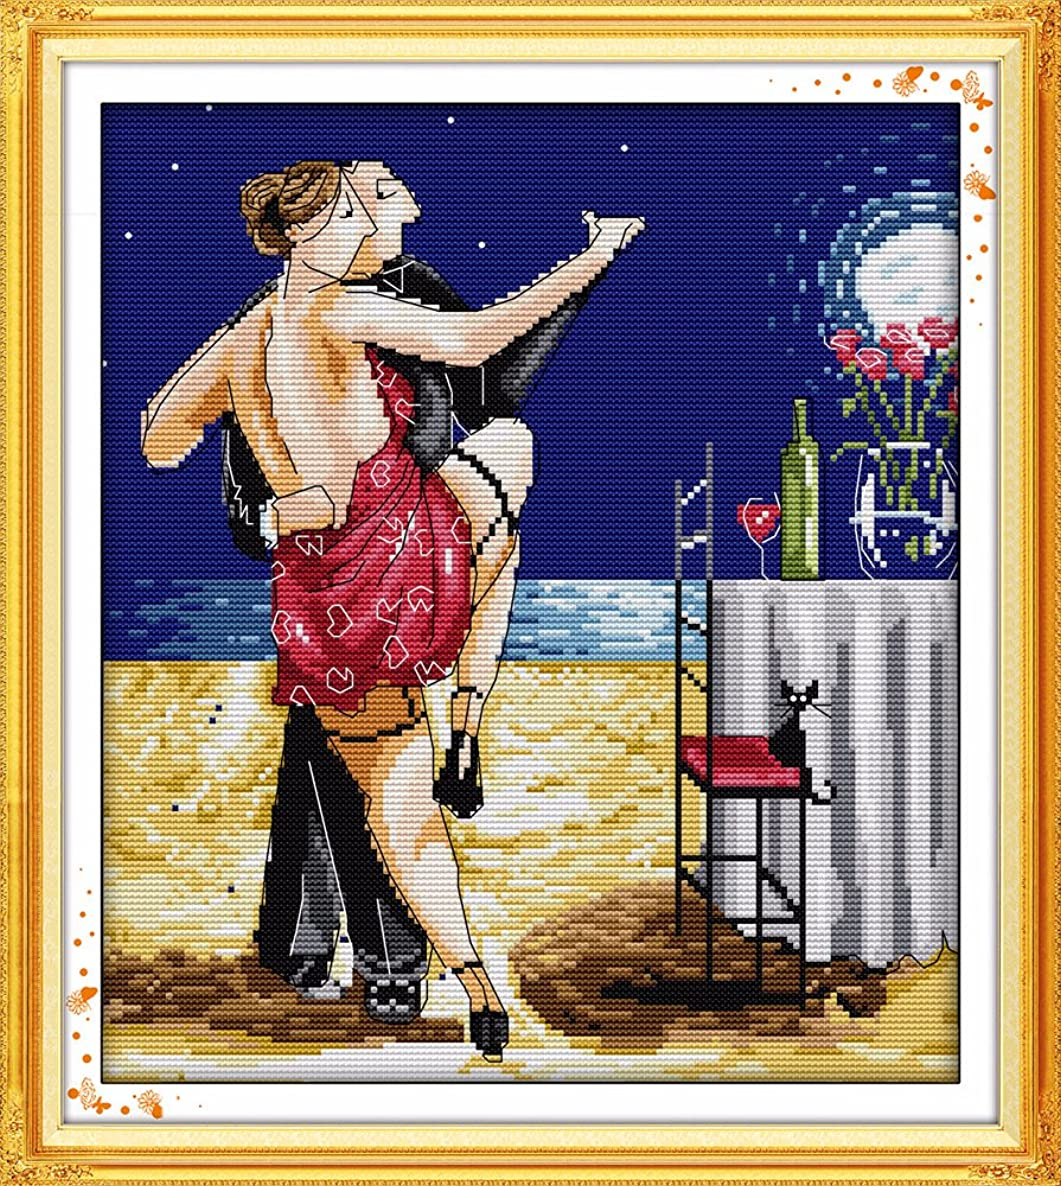 Joy Sunday Sewing Pattern Tango Couple Cross Stitch Kits Enjoy Life Style Cross-Stitch Sets DMC Hand Embroidery Kit 16''x18'' ryyxlwg235